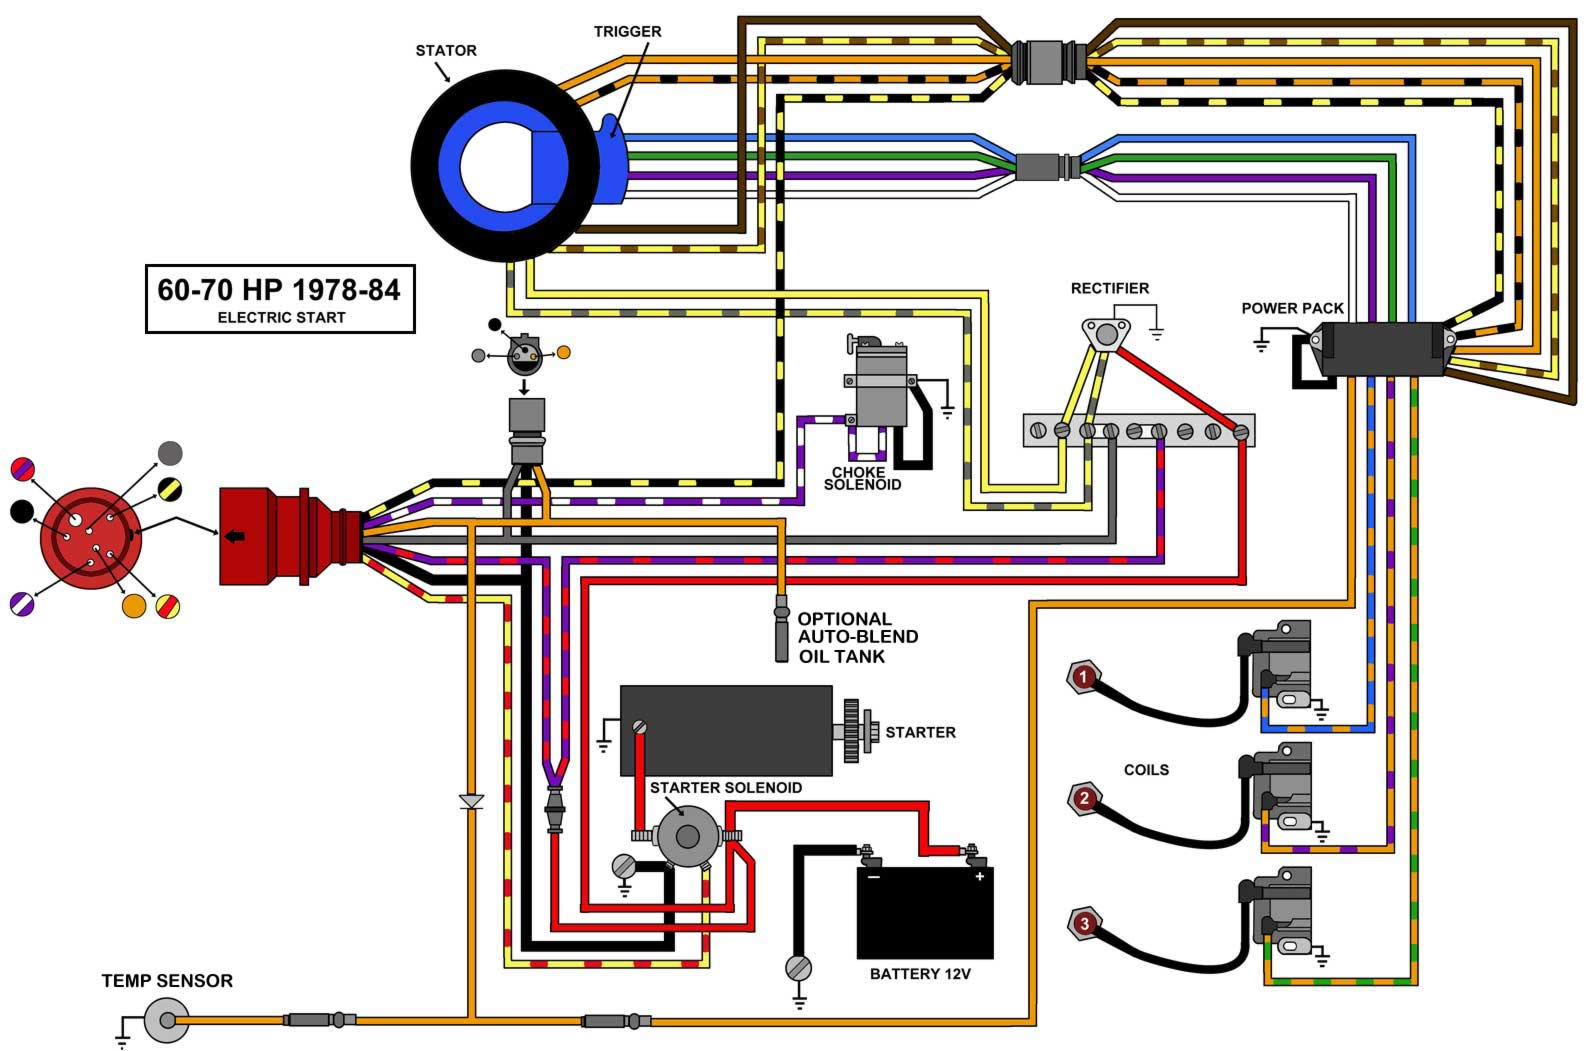 78 84_3 CYL_EL omc wiring harness diagram johmson wiring harness \u2022 wiring Boat Ignition Switch Wiring Diagram at mifinder.co